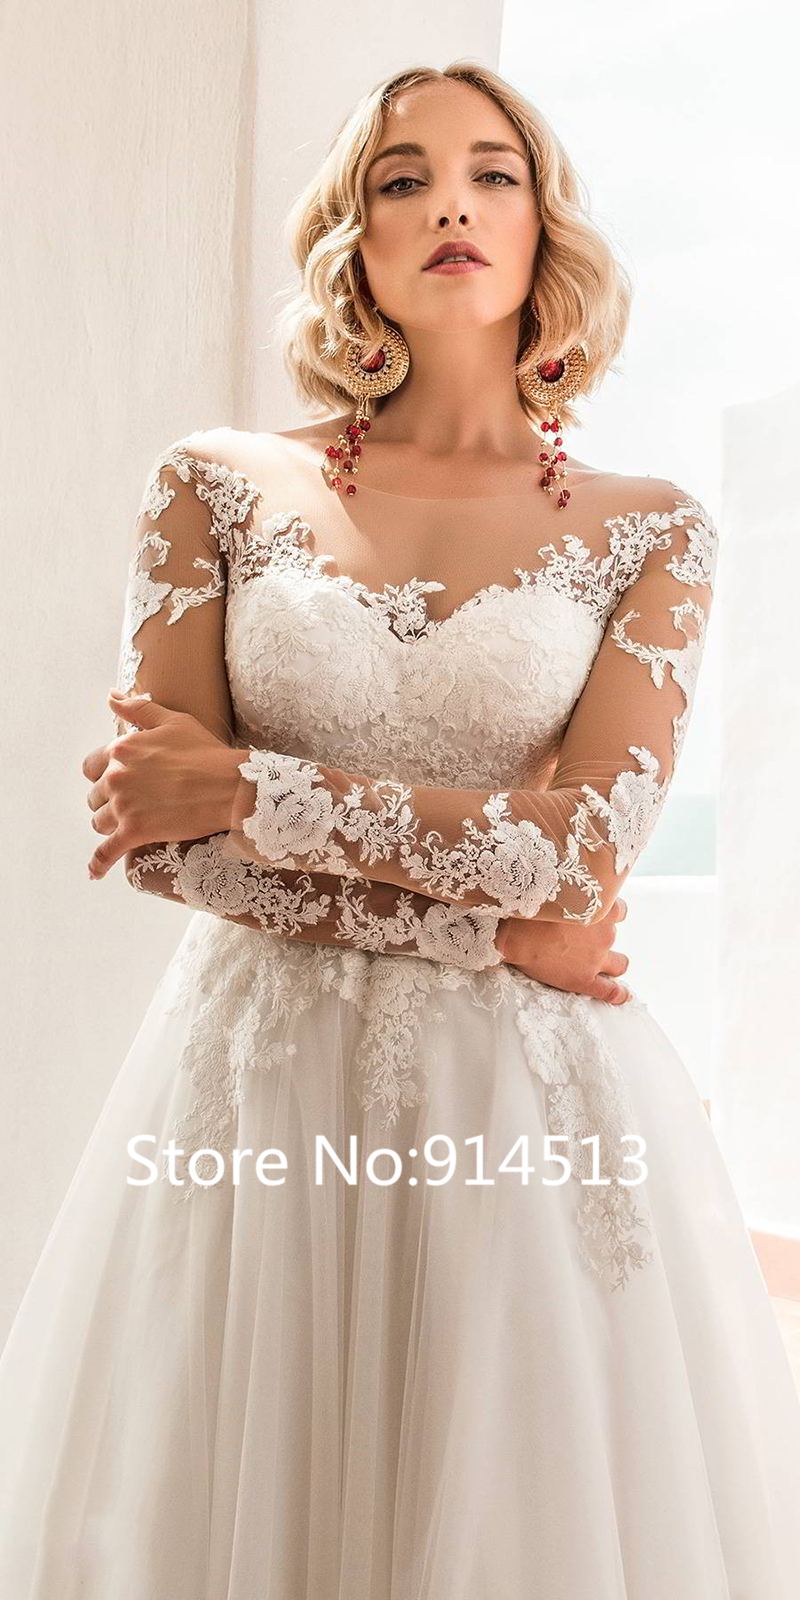 Image 4 - Glamorous Tulle Jewel Neckline Ball Gown Wedding Dresses With Lace Appliques Belt Long Sleeve Wedding Gowns Vestido de Noiva-in Wedding Dresses from Weddings & Events